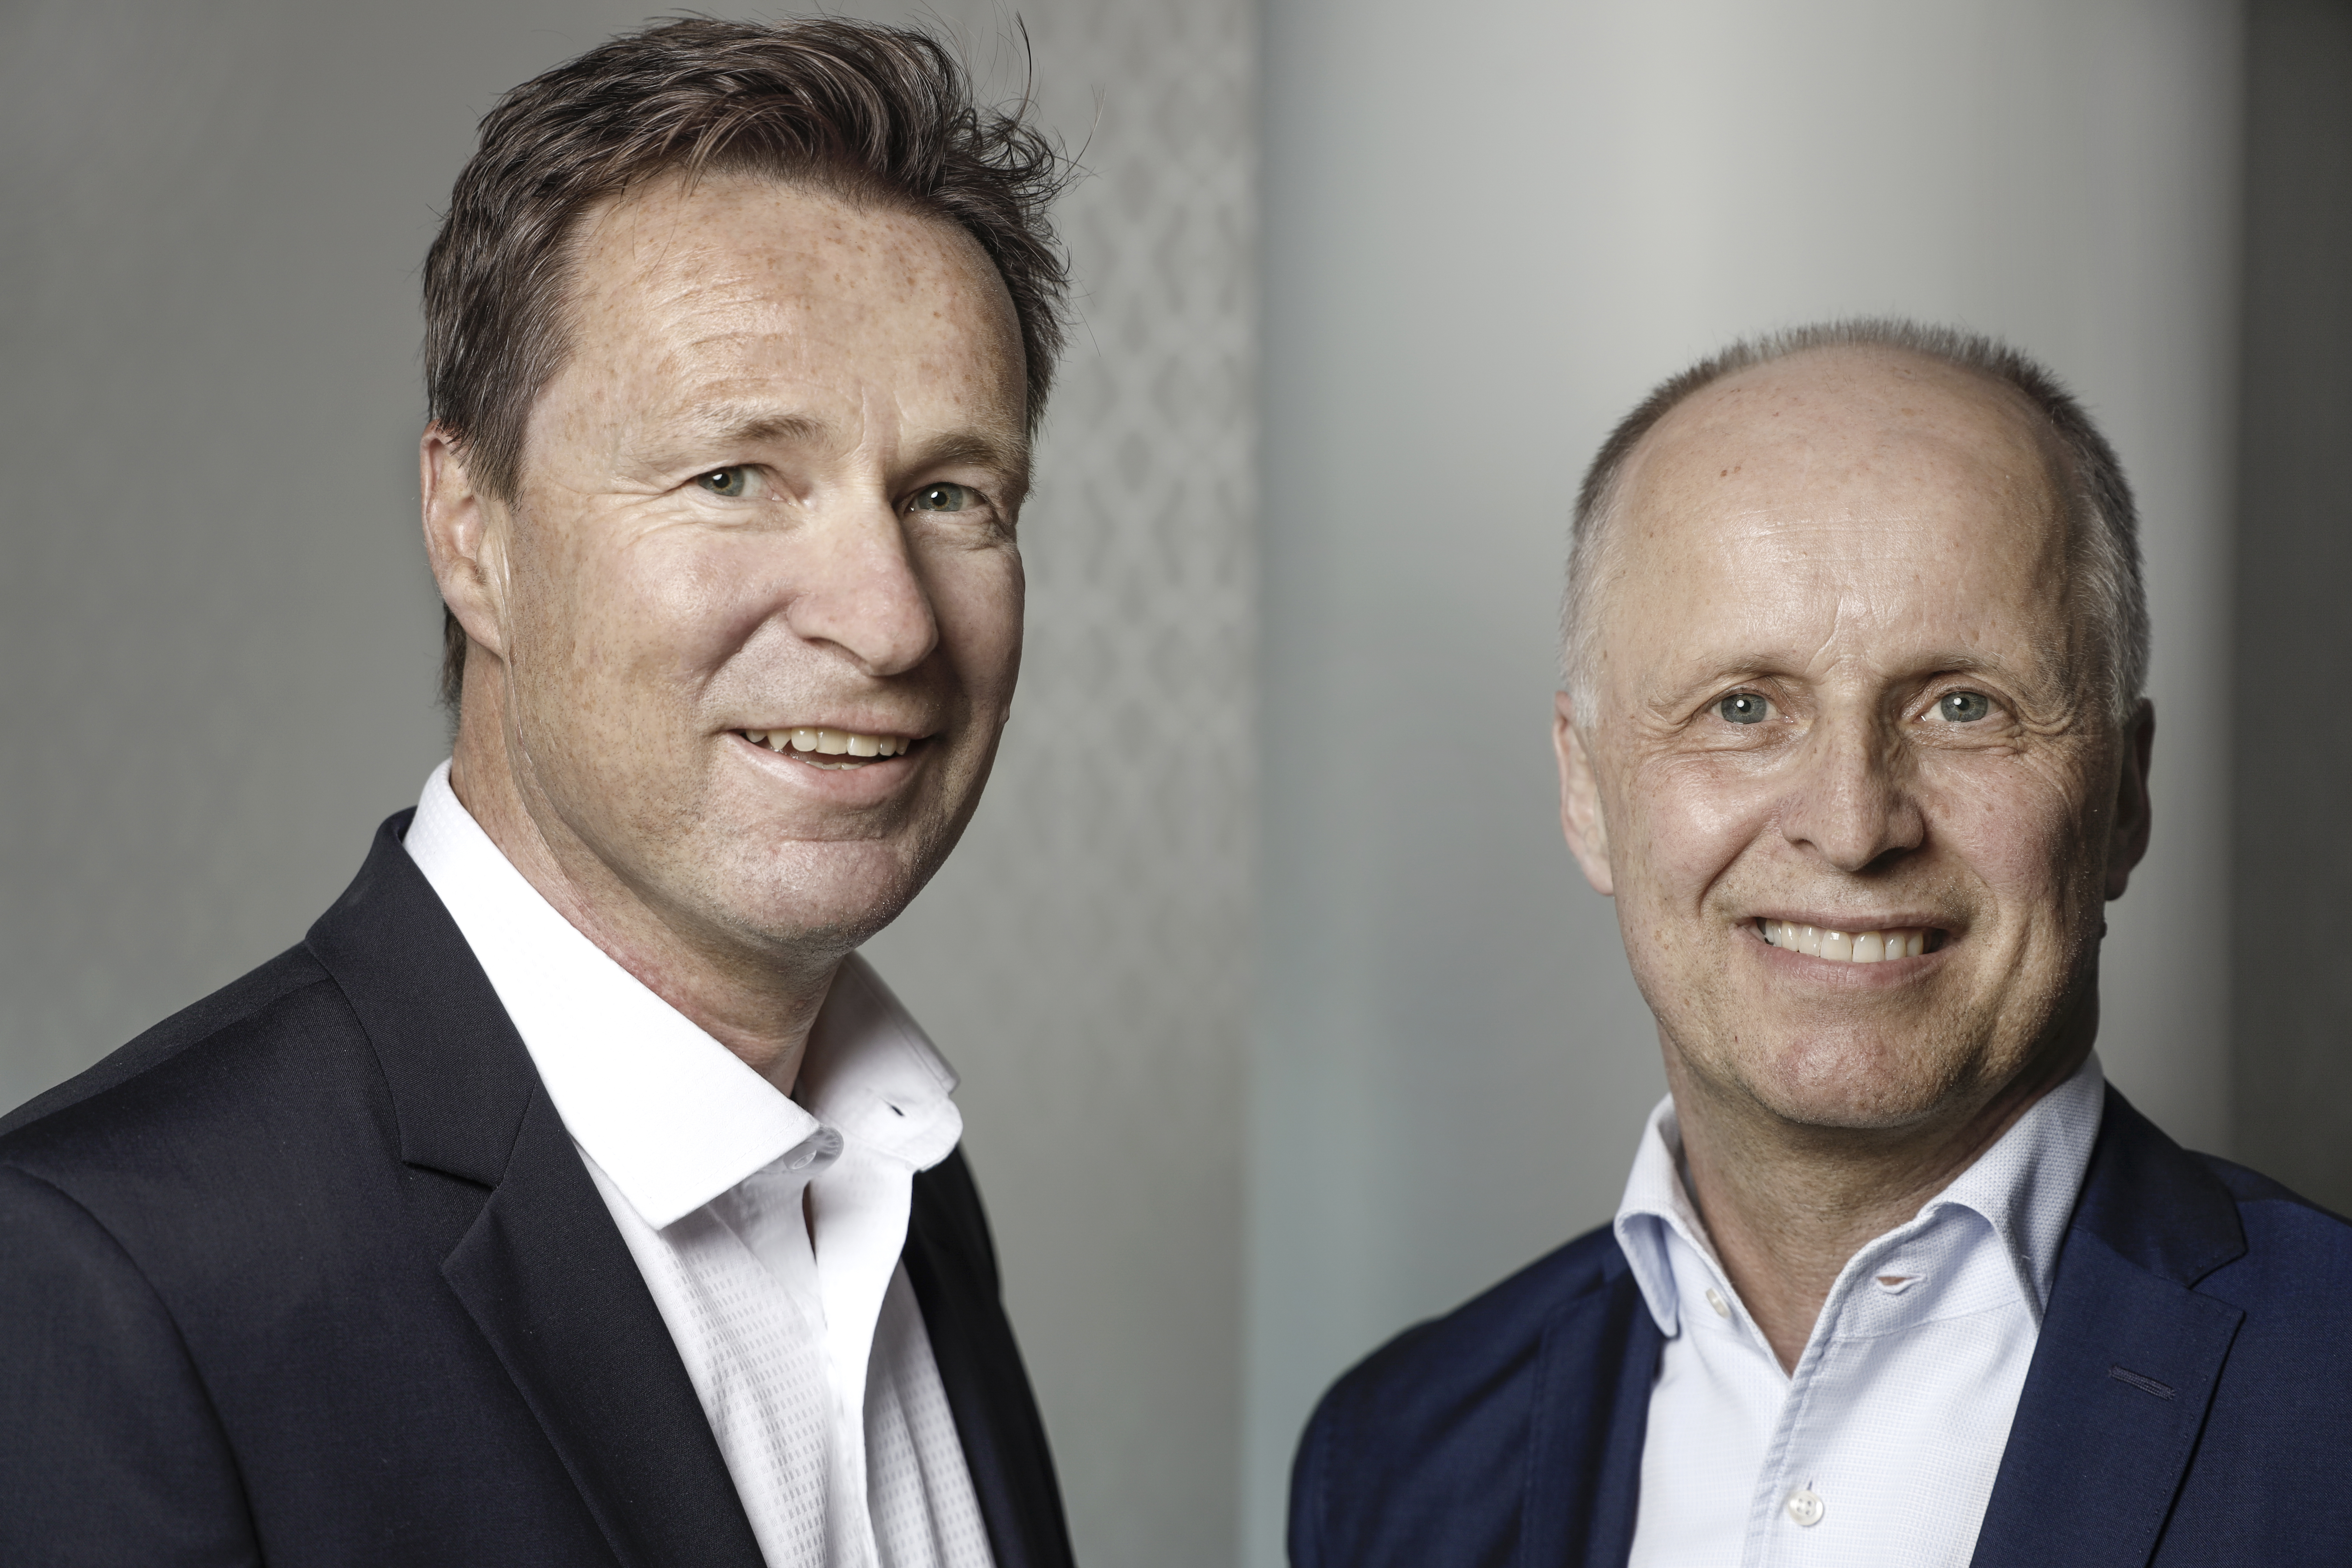 Tieto has announced a merger agreement with the Norwegian it company EVRY. The merger will create a combined revenue of 3 billion euros and 24 000 employees under the name TietoEVRY, which will be headquartered in Finland. The company will field 5 000 digital consultants in the Nordics and 10 000 internationally, in over 90 countries and hence form one of the largest employer in digital services and software in the Nordics.